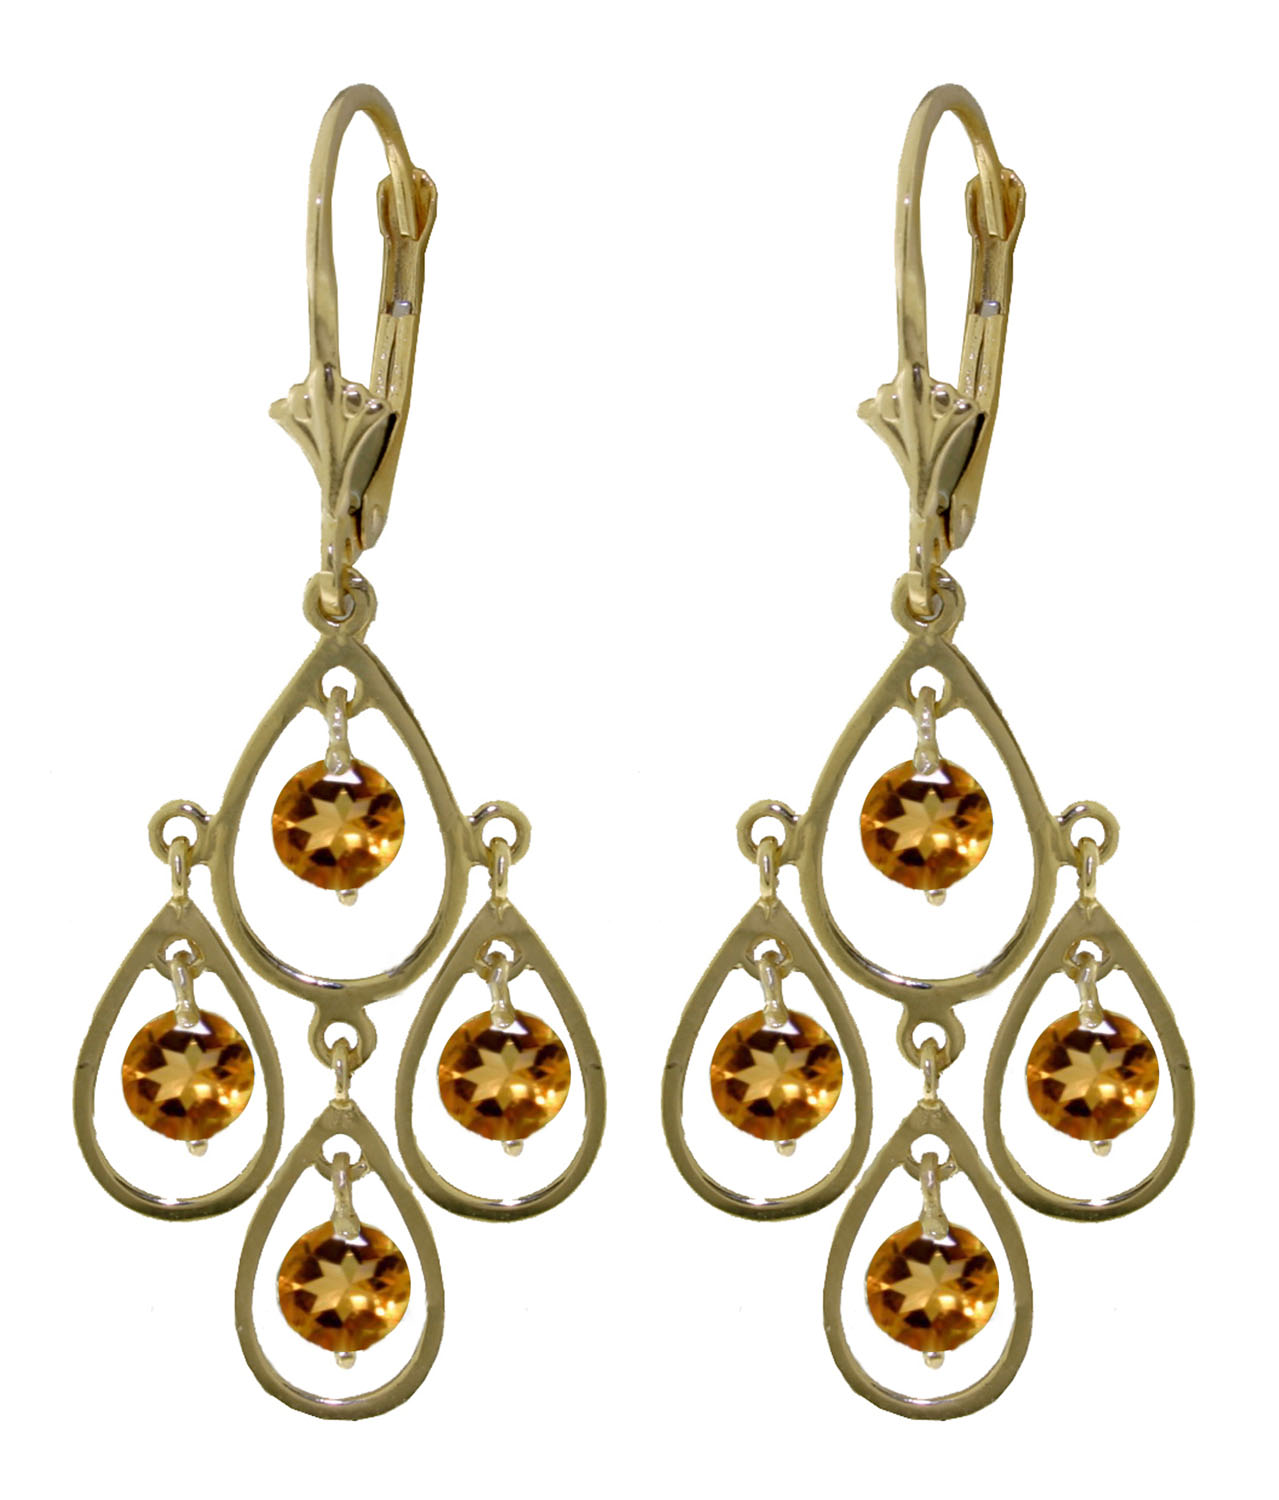 14k solid rose gold chandelier earrings with citrines ebay image is loading 14k solid rose gold chandelier earrings with citrines arubaitofo Image collections